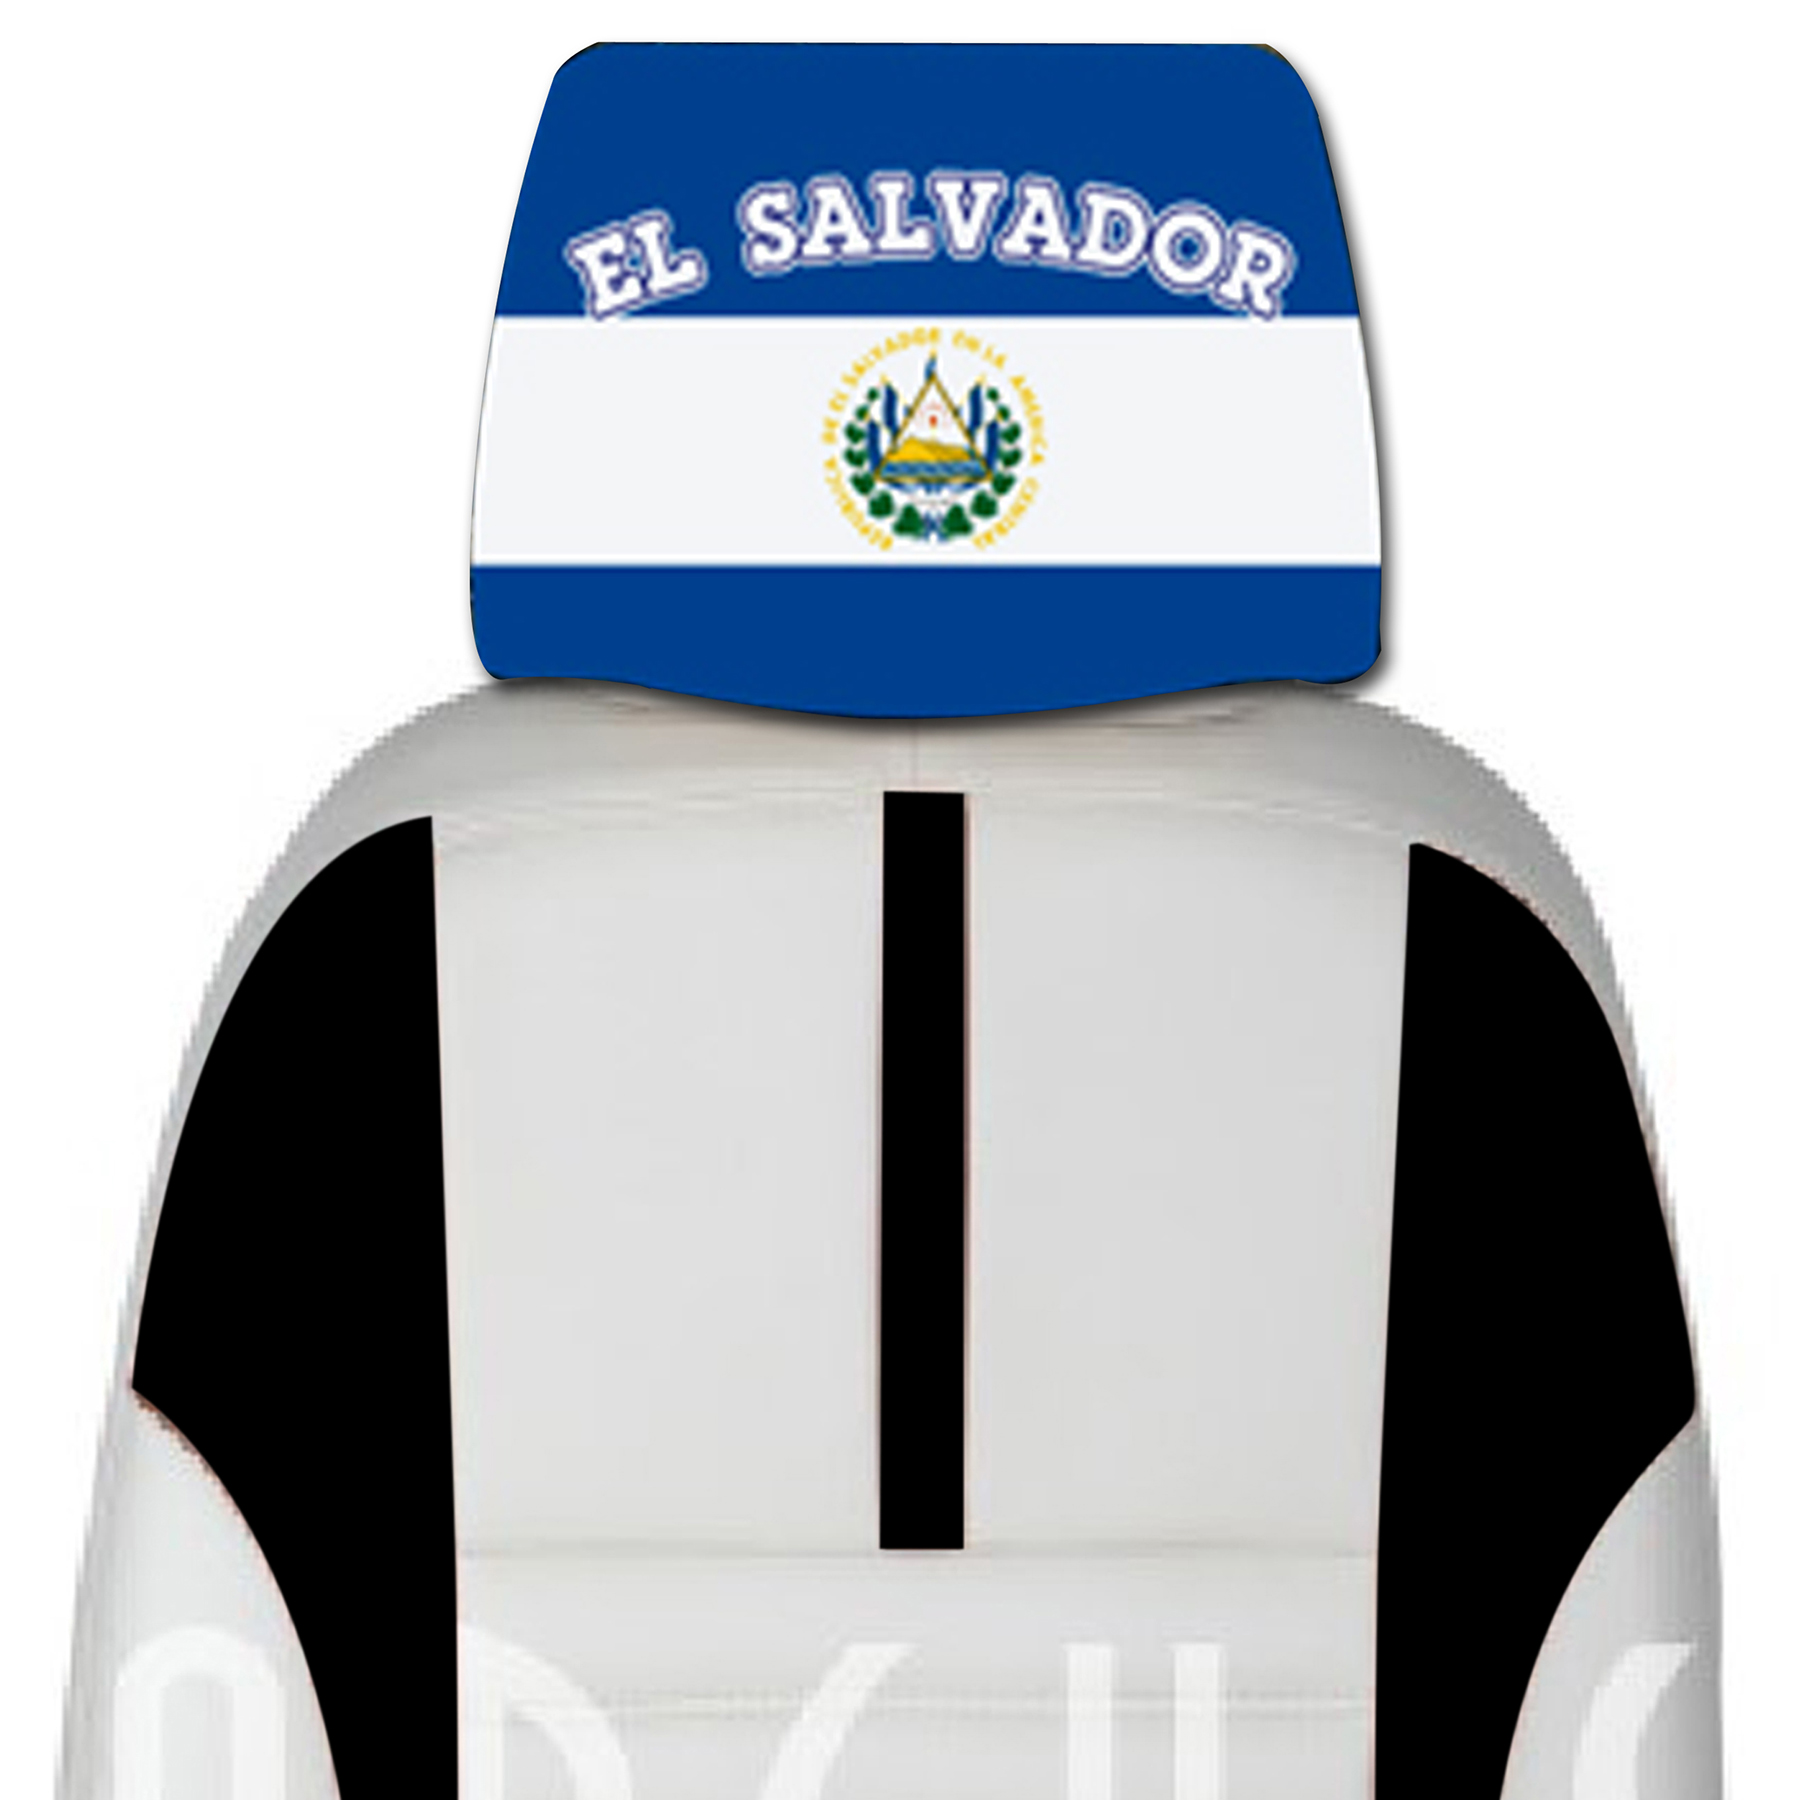 images/Headrest car cover seat for El-Salvador.jpg